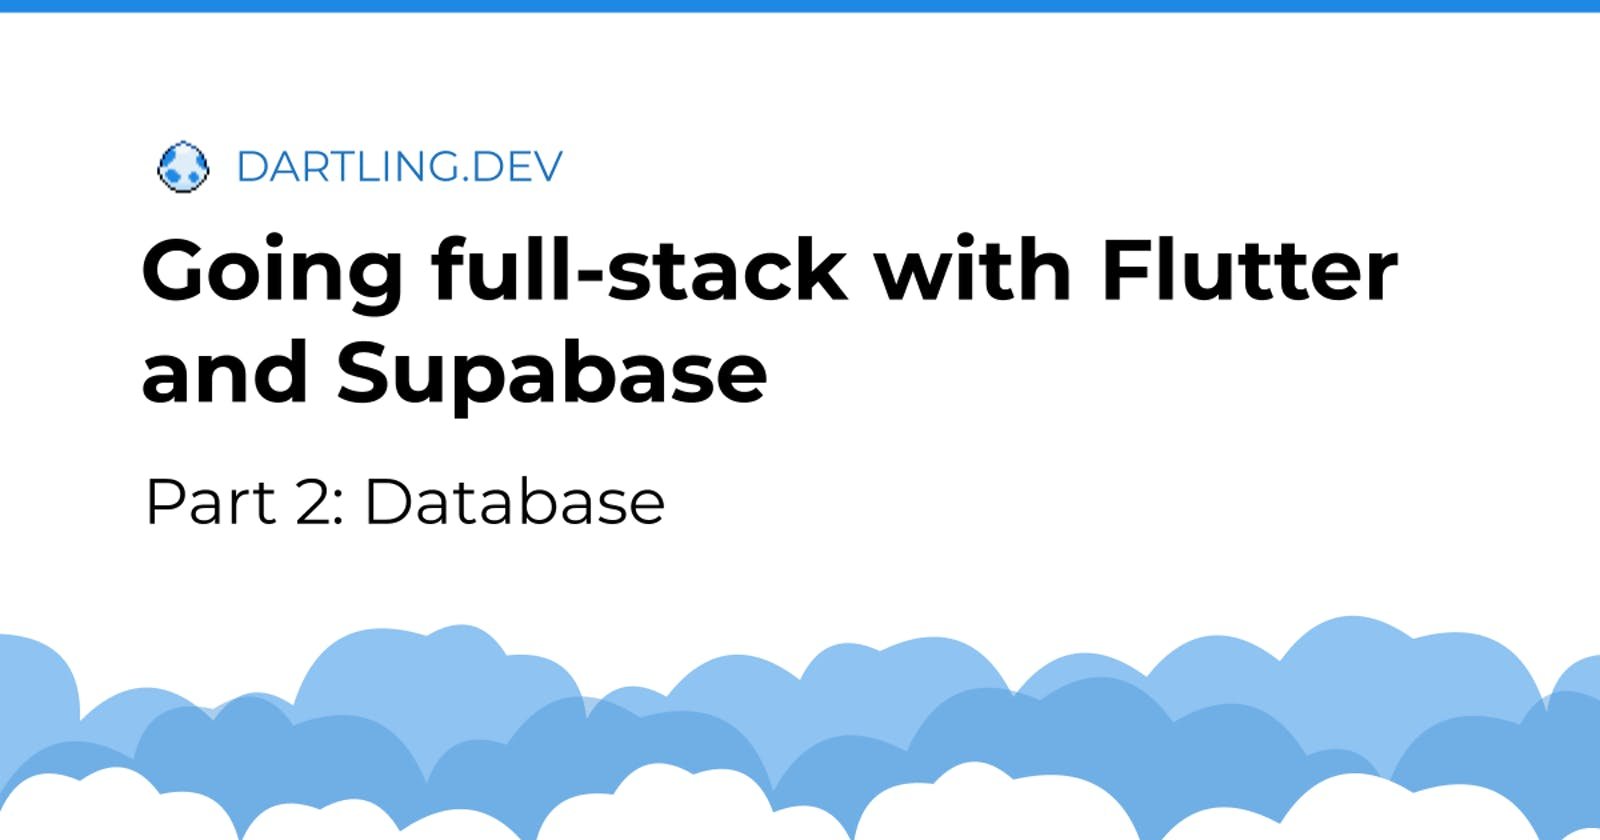 Going full-stack with Flutter and Supabase - Part 2: Database